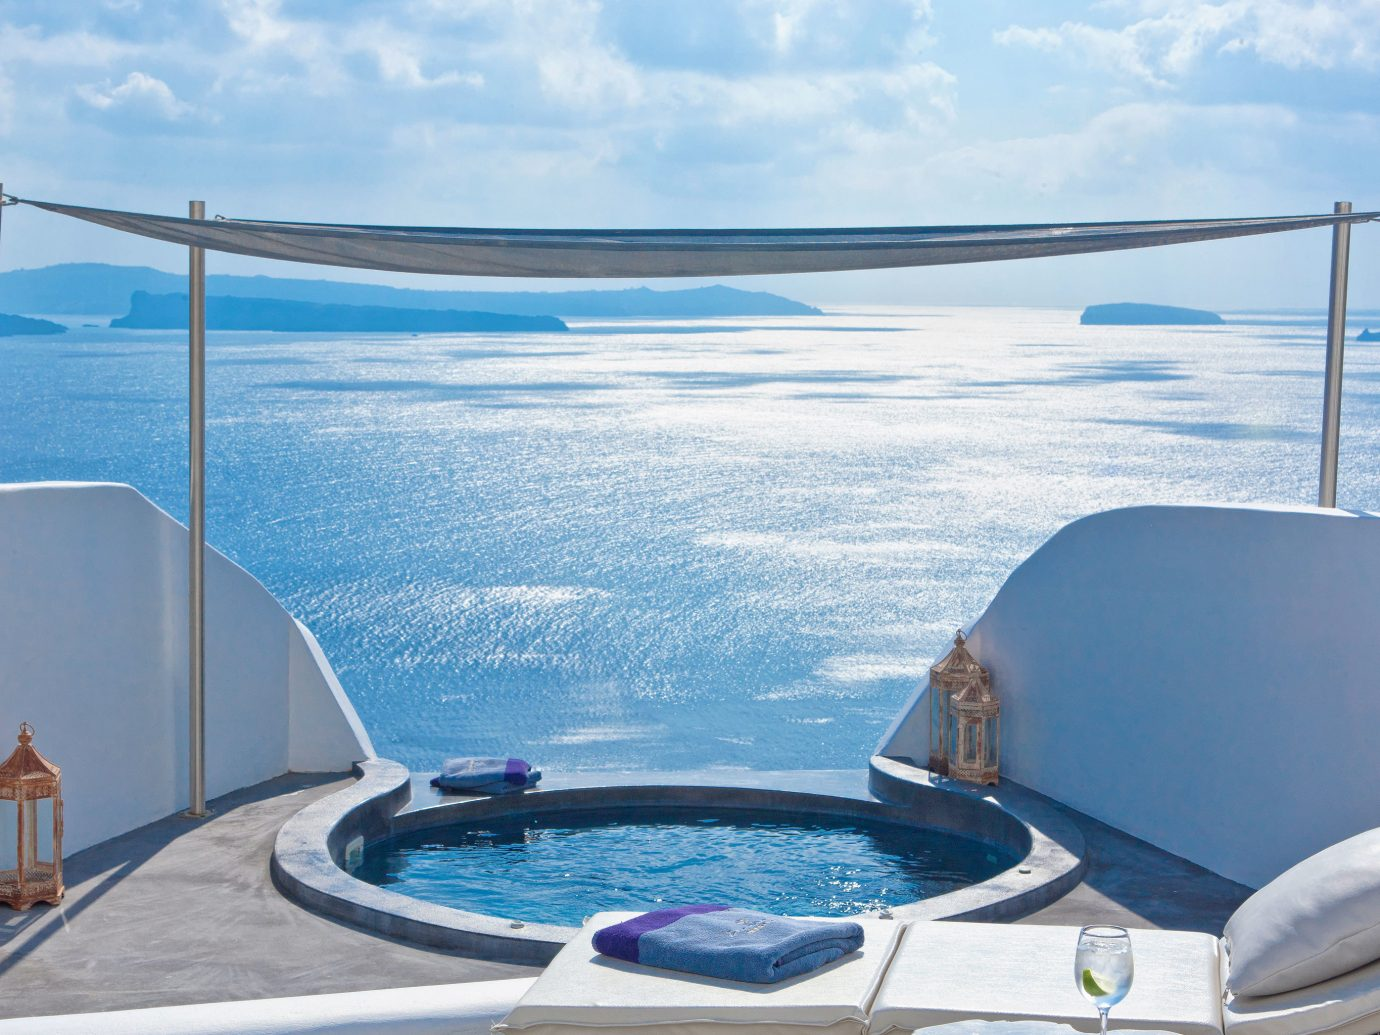 Balcony Classic Elegant Greece Hot tub/Jacuzzi Hotels Island Luxury Romantic Santorini Scenic views Suite Trip Ideas Waterfront sky water outdoor swimming pool yacht Boat vehicle vacation Ocean overlooking passenger ship Sea bed jacuzzi Deck day